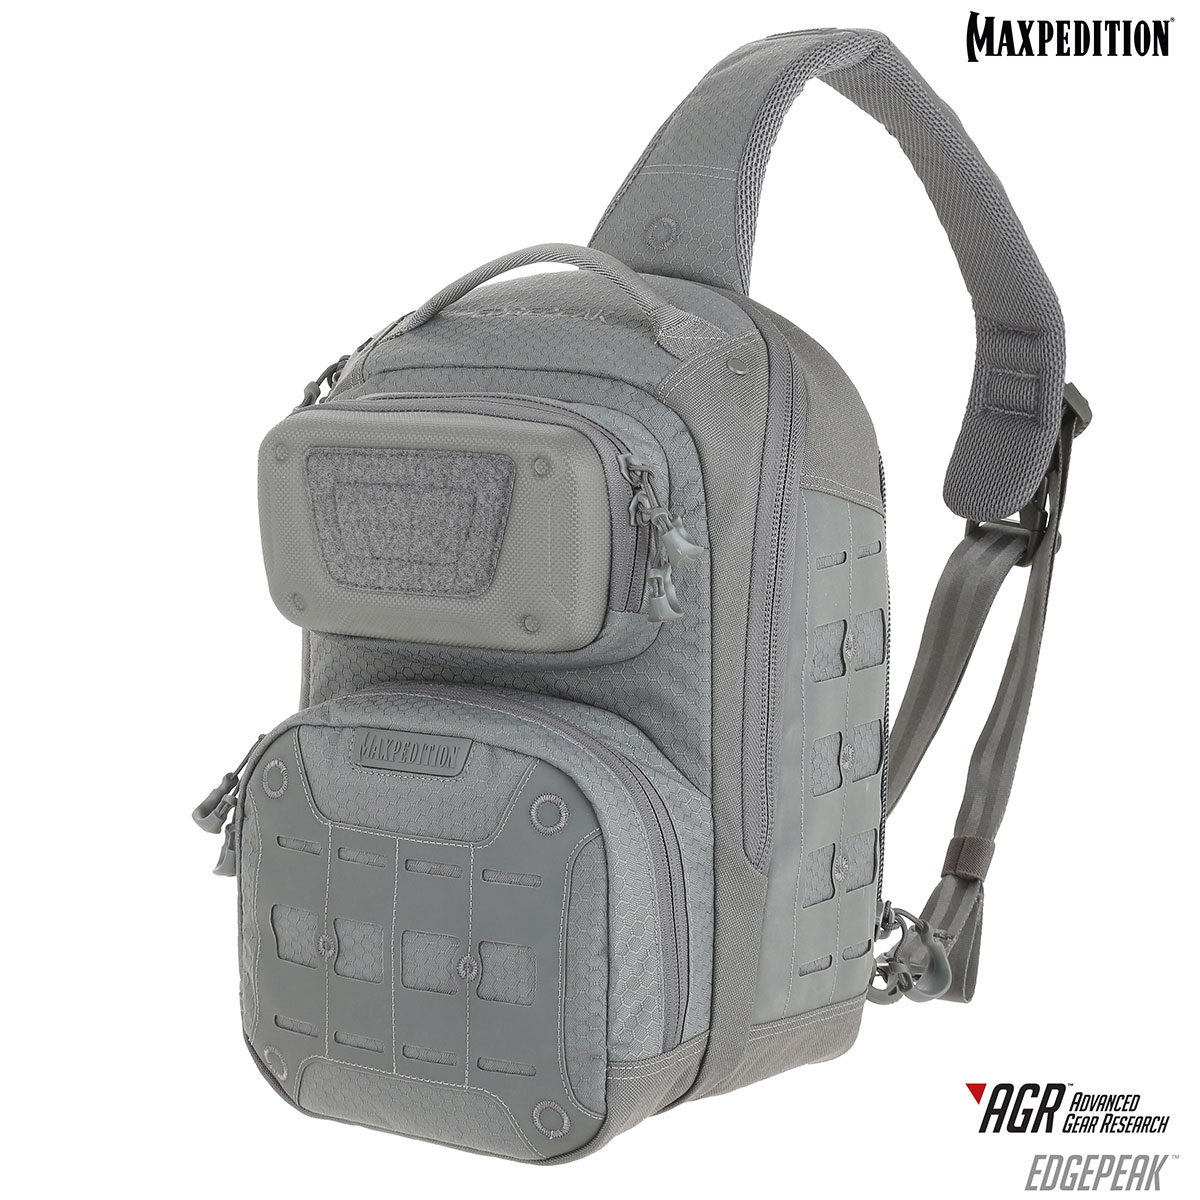 Maxpedition EDPGRY Advanced Gear Research AGR Edgepeak Ambidextrous Sling Pack, Gray